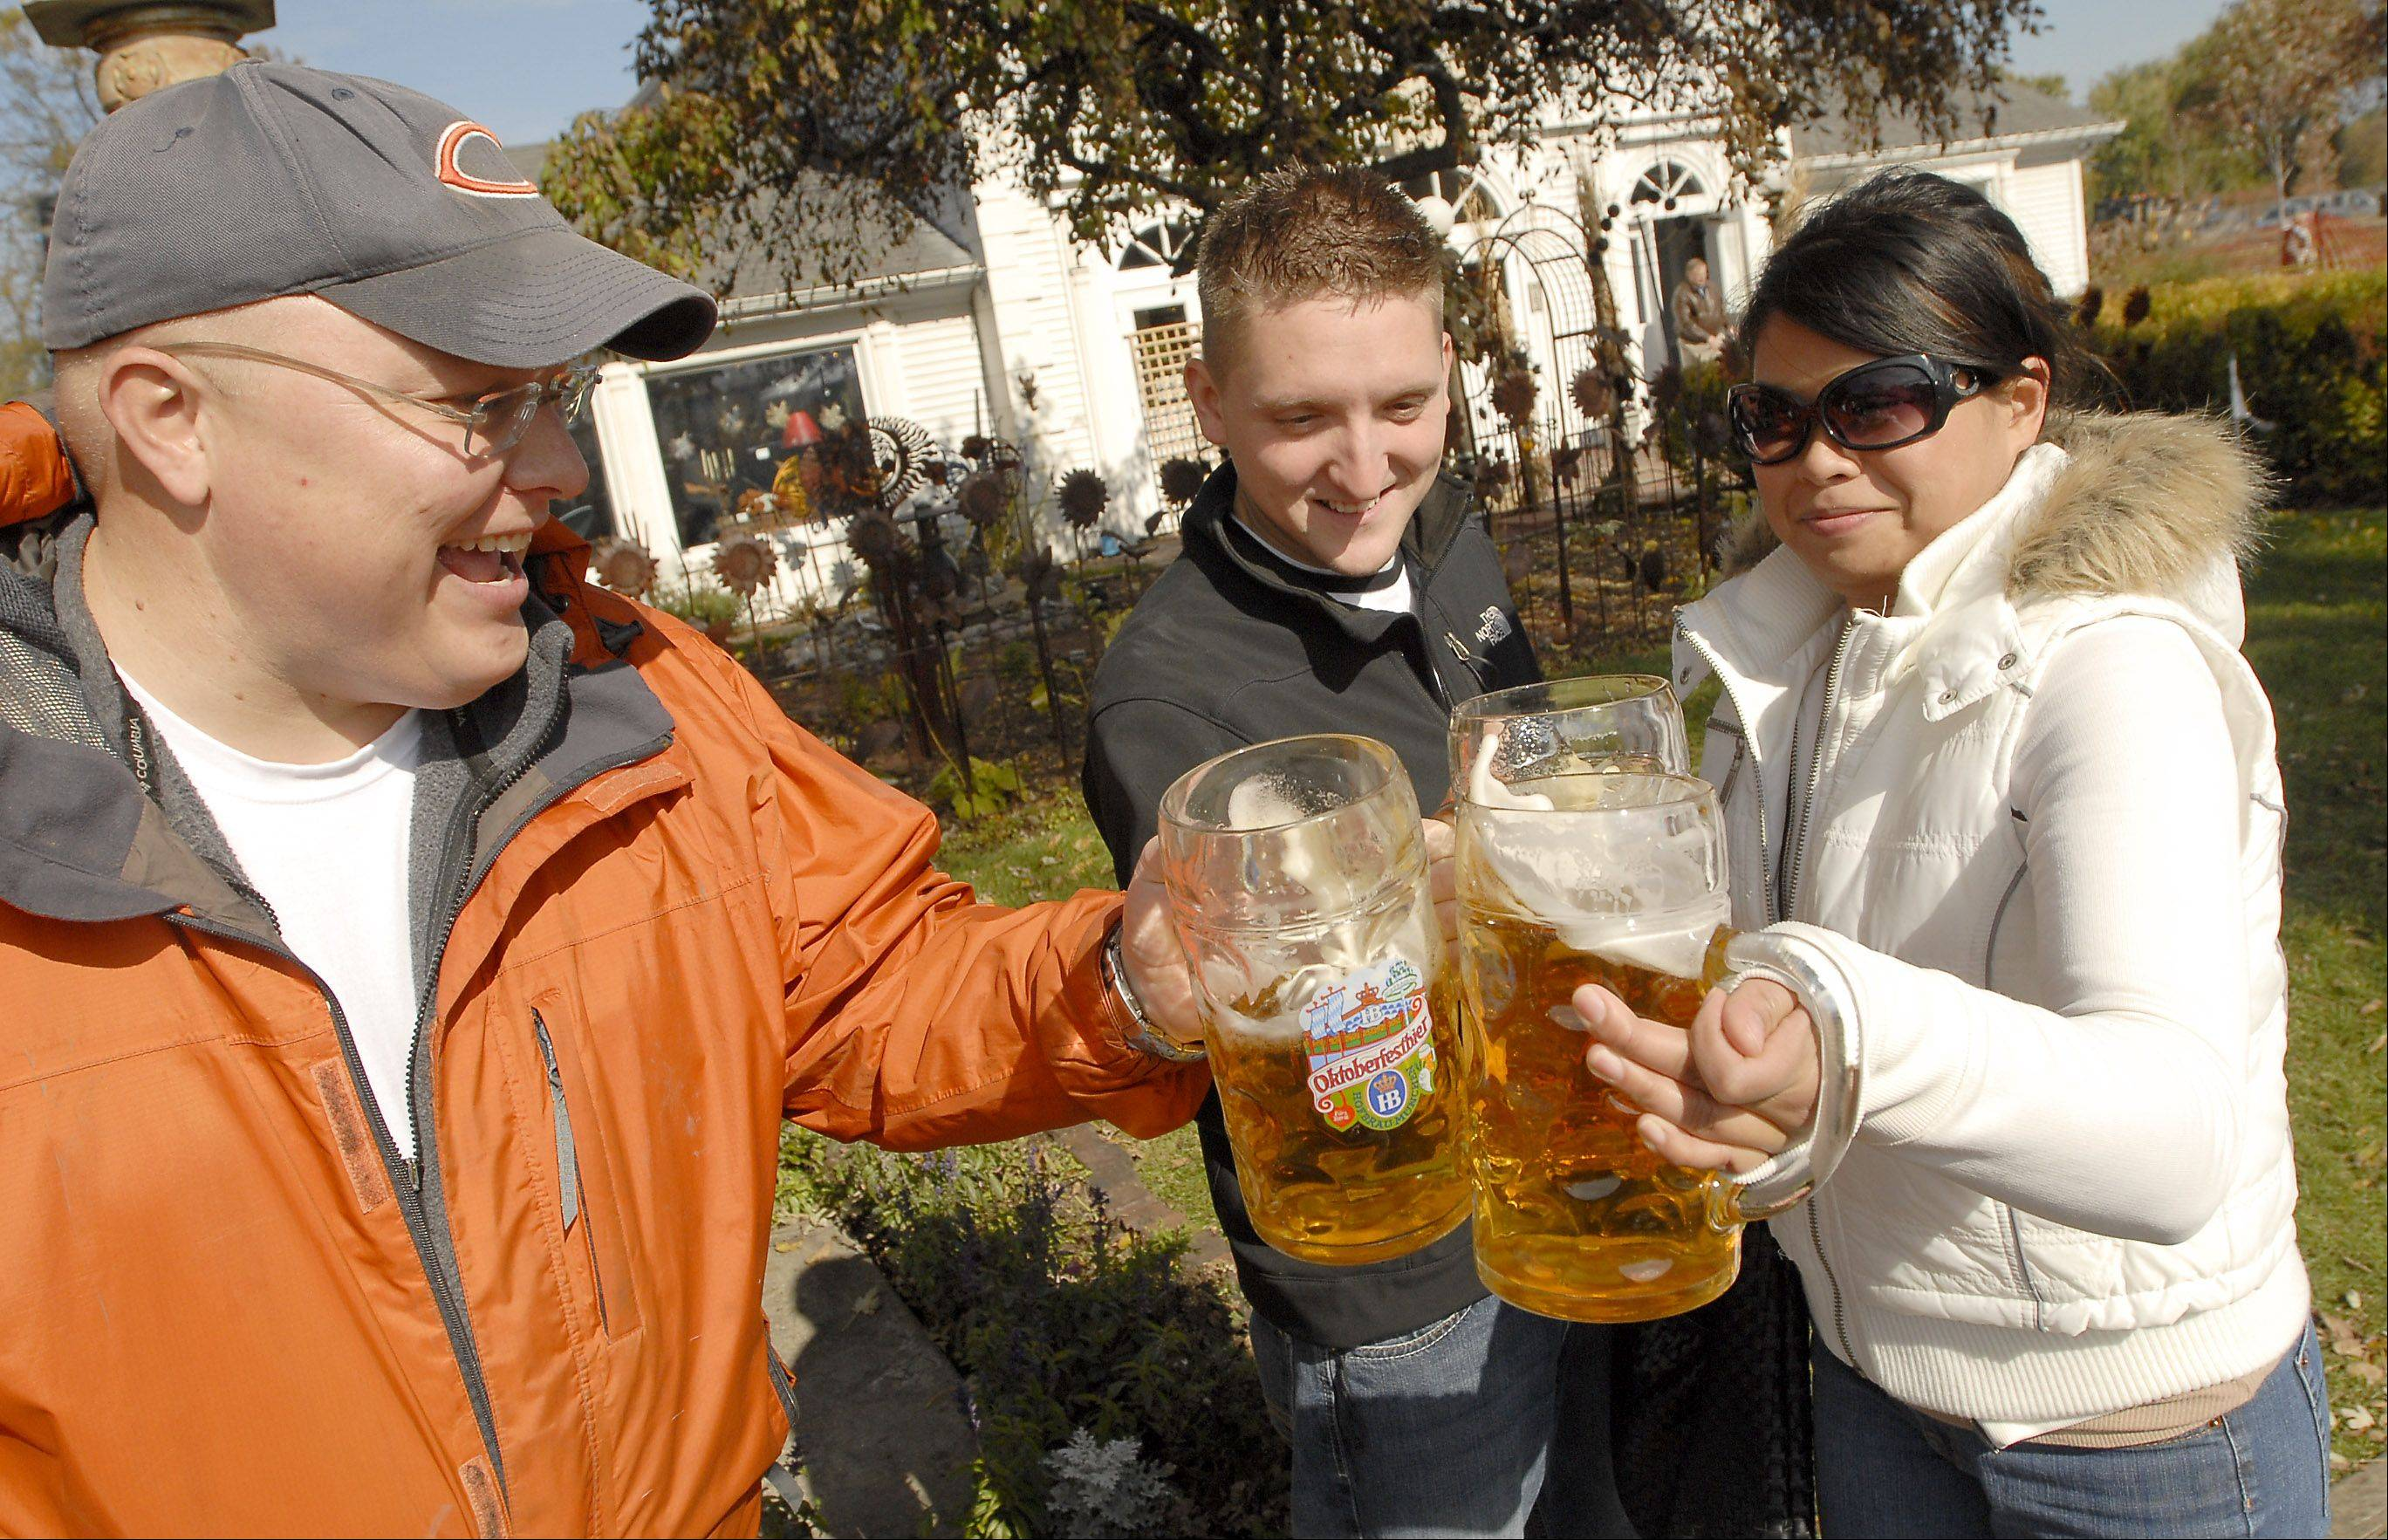 German beer and food are part of the fun at Long Grove's annual Oktoberfest.